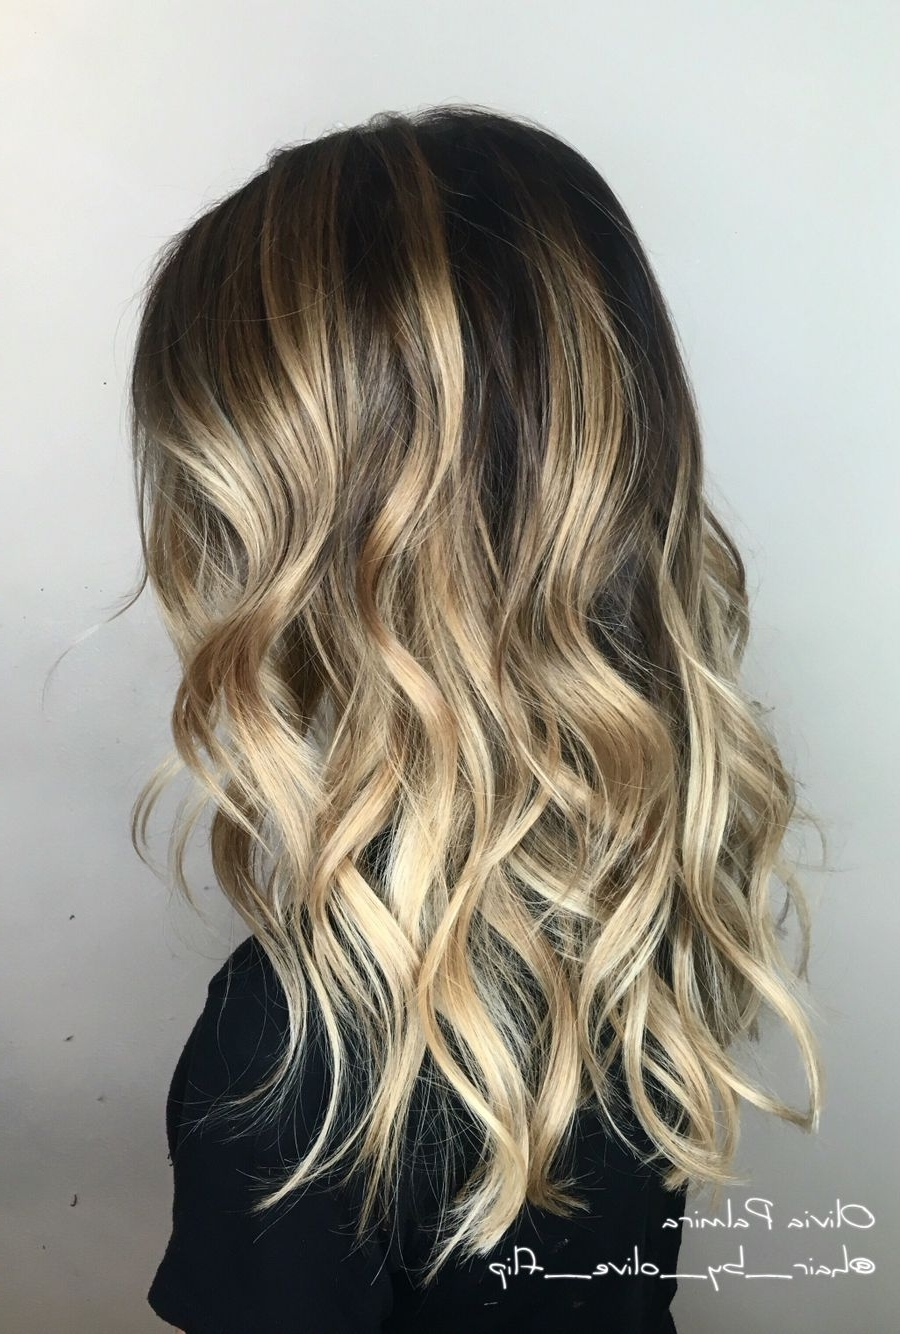 Aveda Wavy Long Hair Blonde Bob Short Hair Beach Wave Medium Ideas Pertaining To Current Beachy Waves Hairstyles With Blonde Highlights (Gallery 20 of 20)